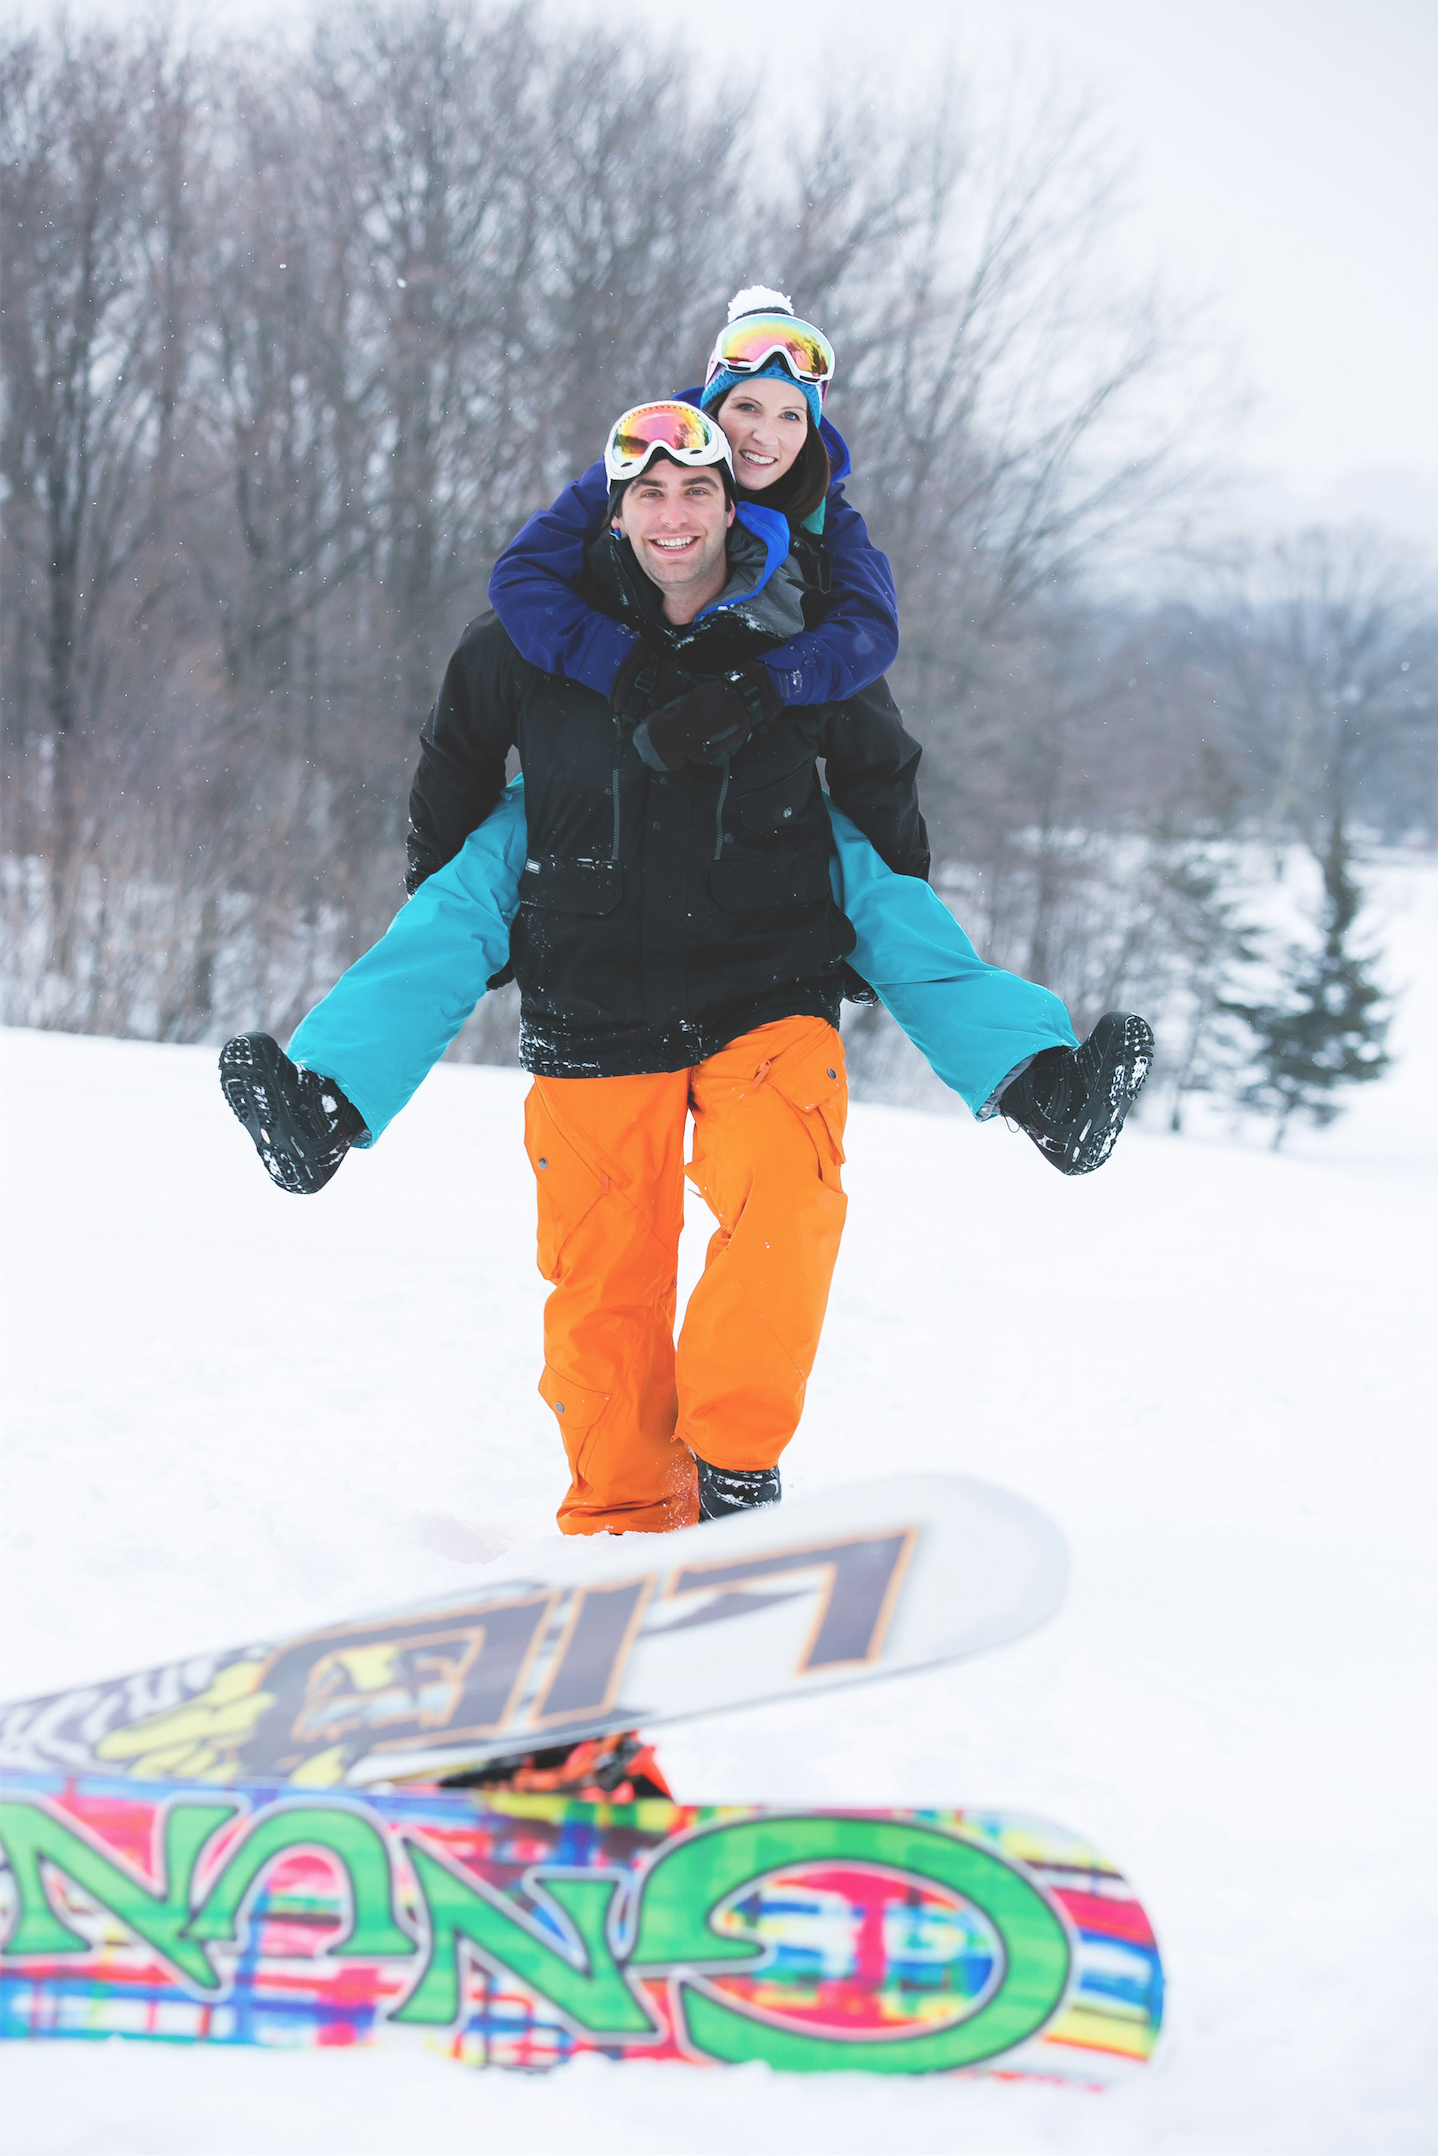 Engagement-Photos-Hamilton-Niagara-Toronto-Burlington-Oakville-Photographer-Engaged-Ring-Photography-Snowboarding-Winter-Moments-by-Lauren-Image-6.png